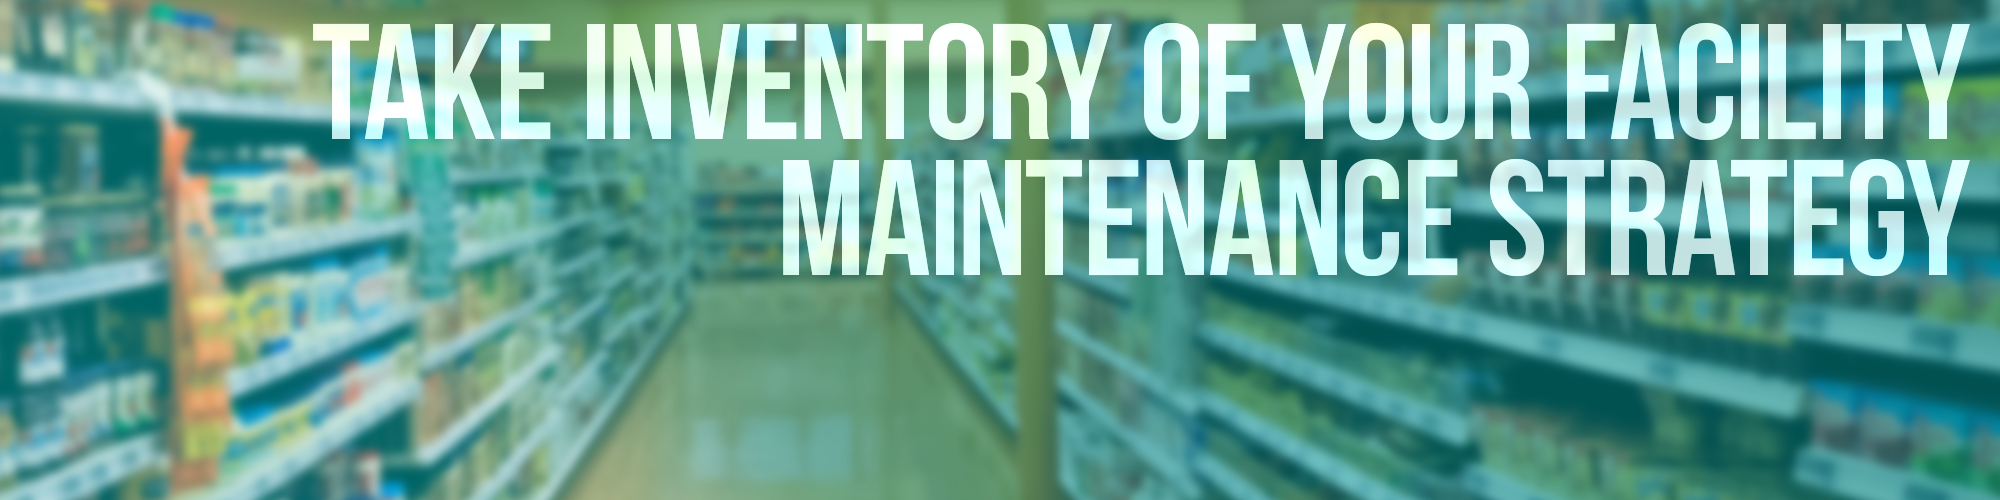 Retail Facility Maintenance